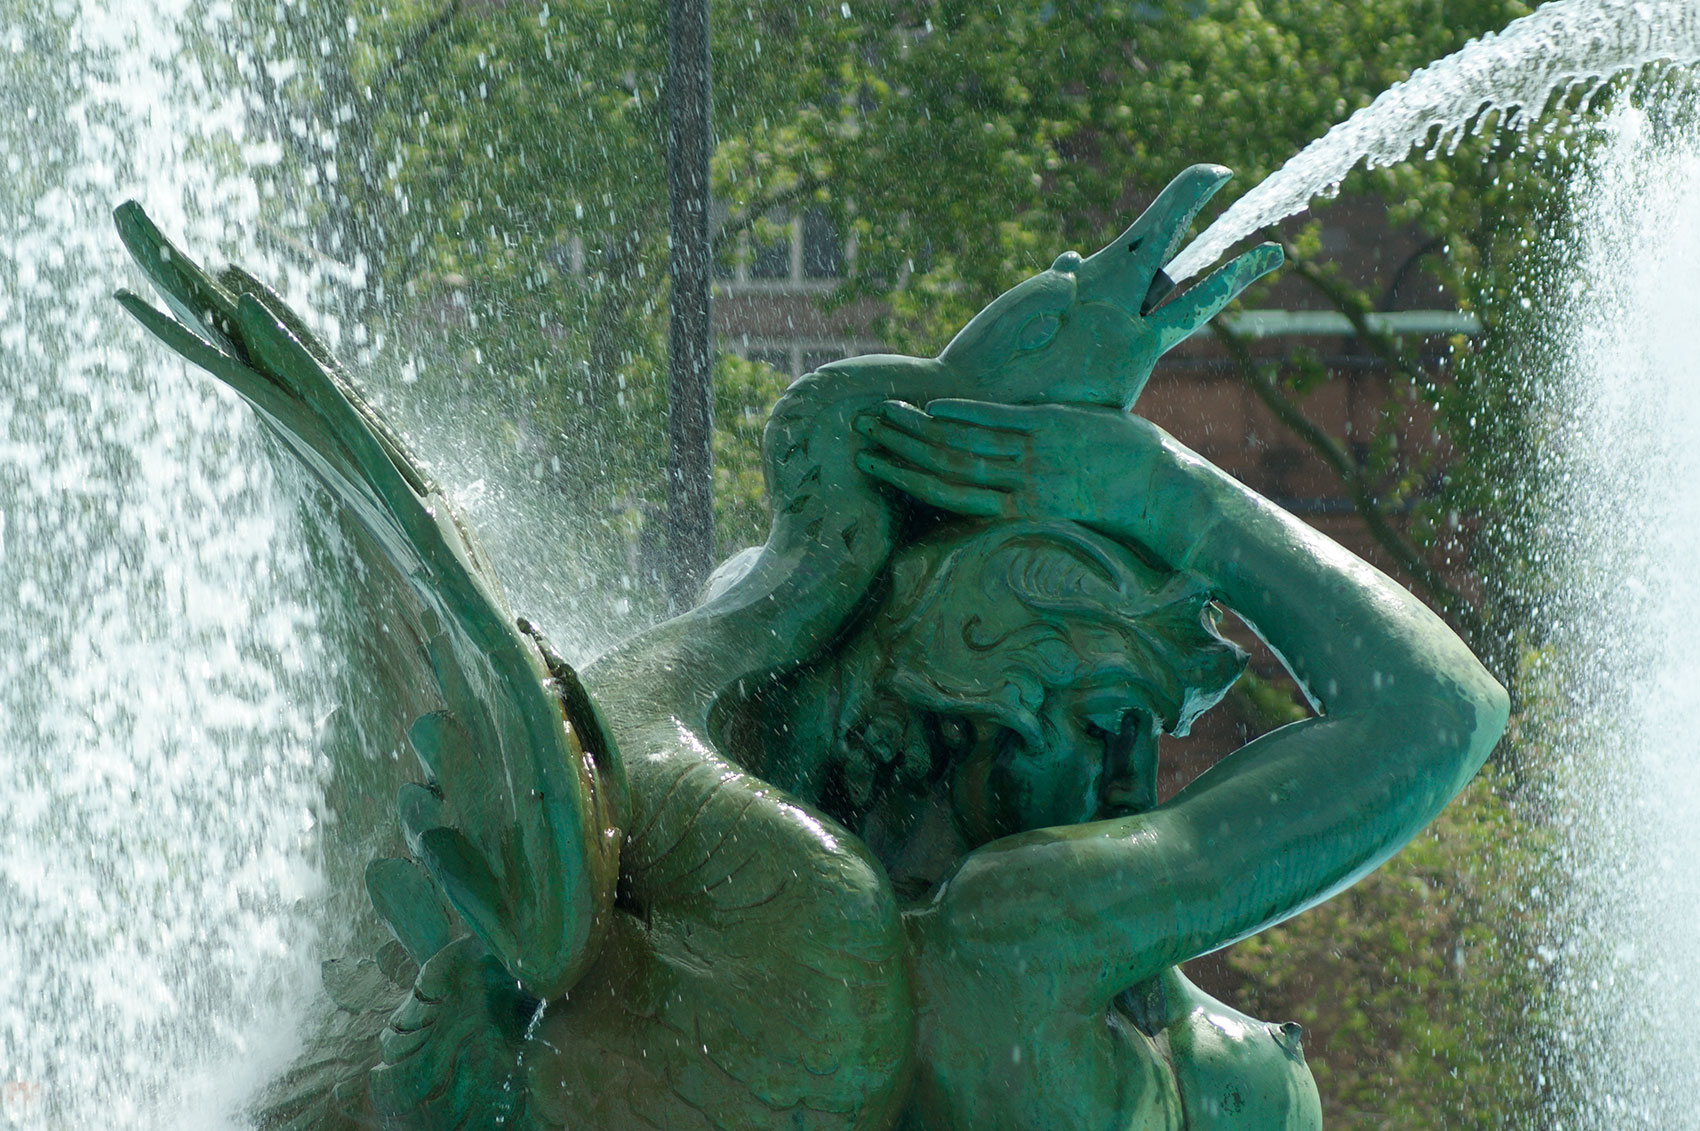 Native American and swan sculpture in the Swann Memorial Fountain